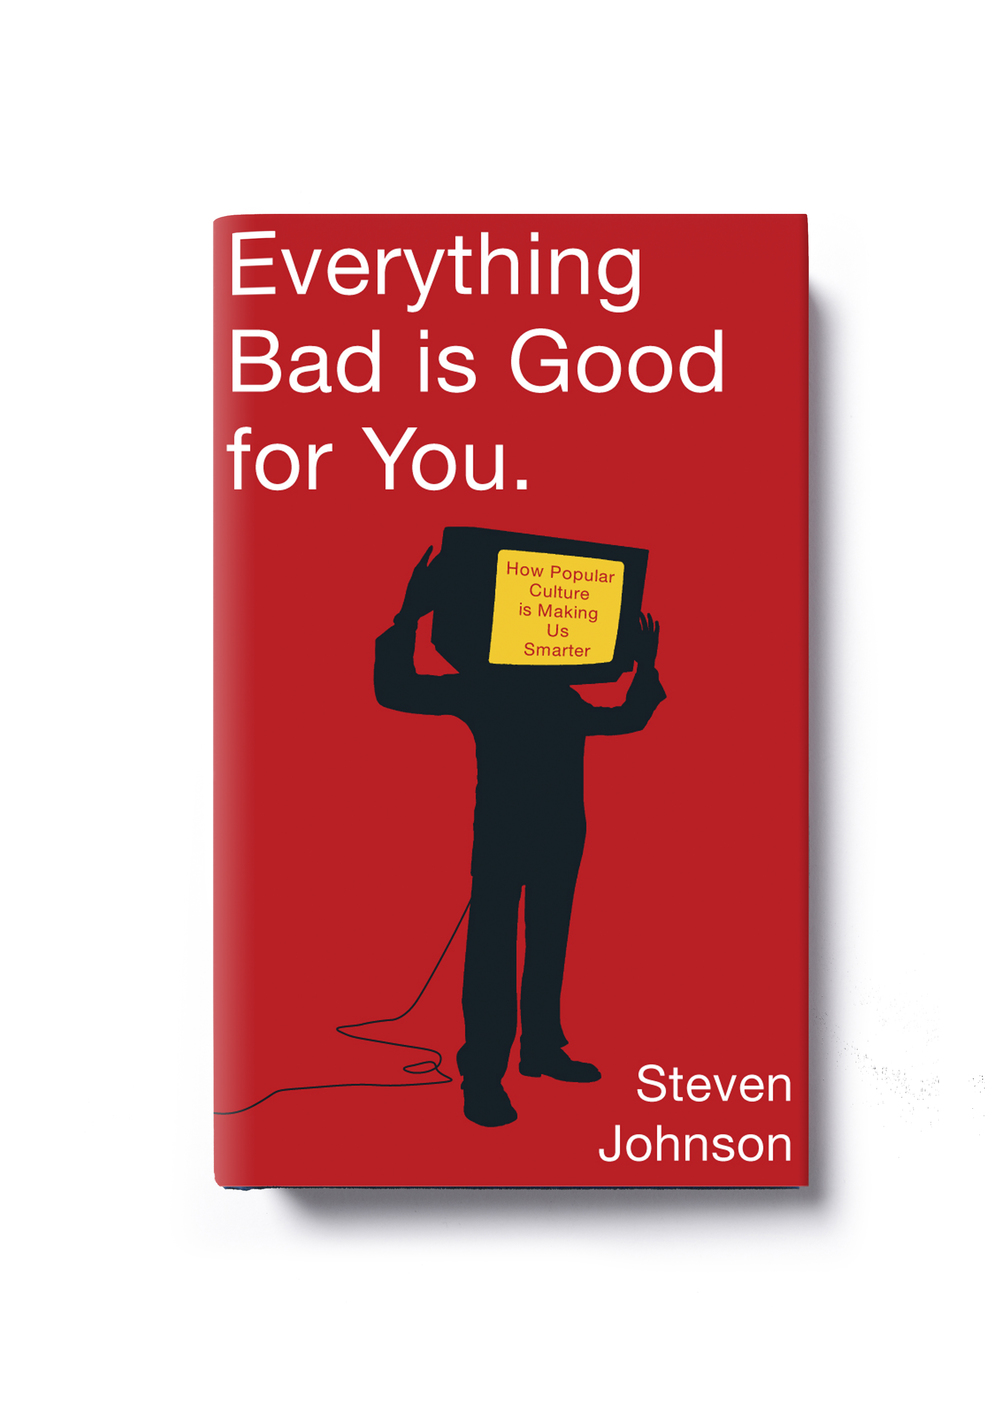 Everything Bad is  Good for You by Steven Johnson - Art Direction: Jim Stoddart Design: Keenan